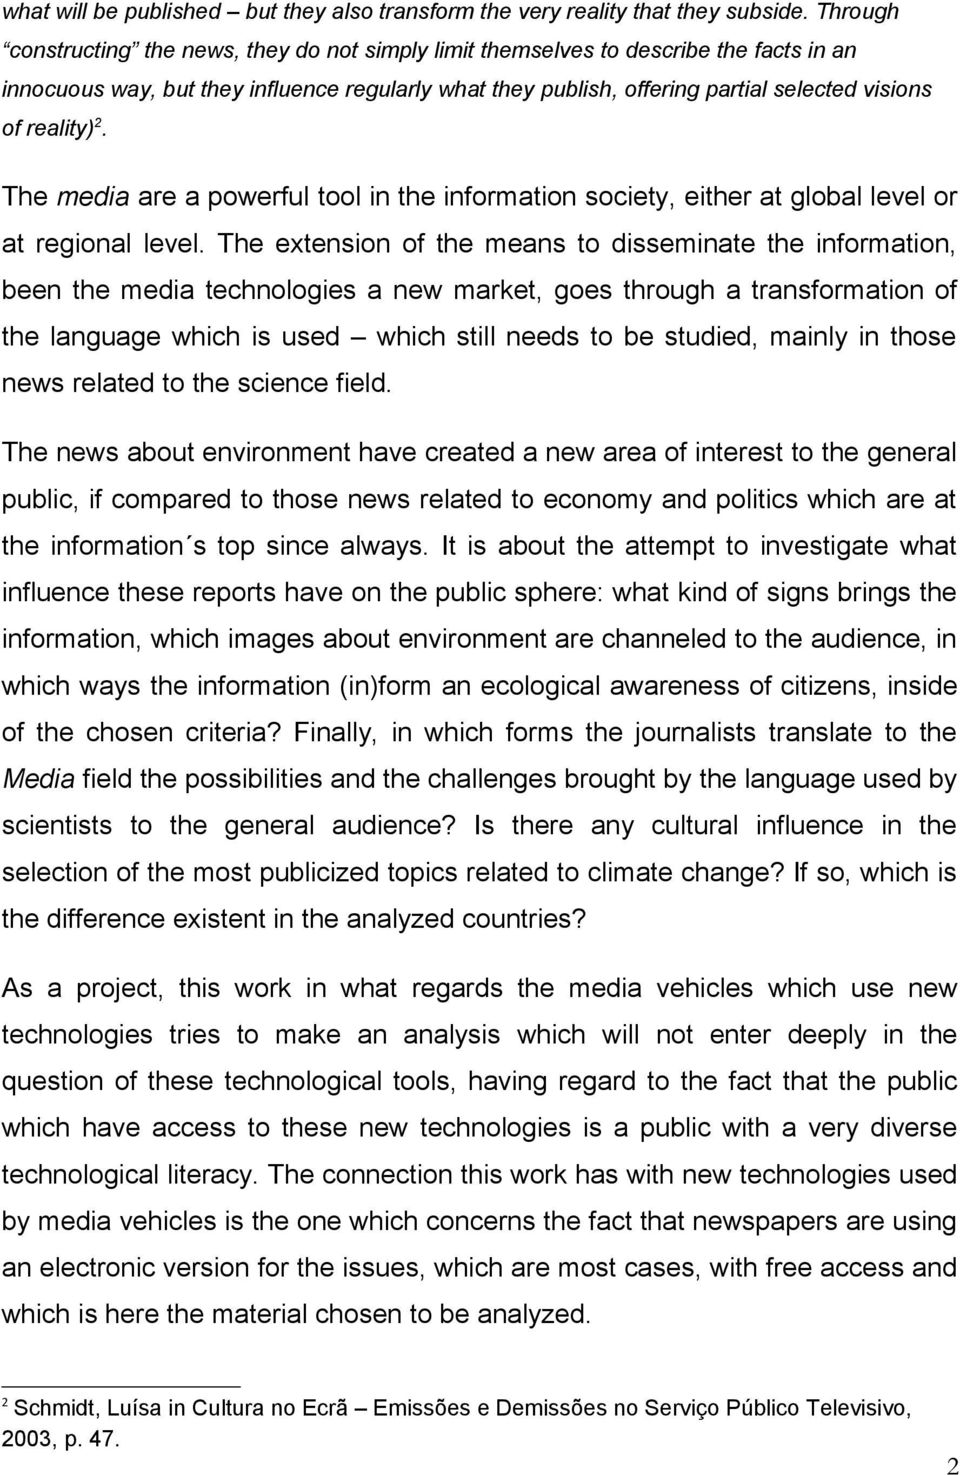 reality) 2. The media are a powerful tool in the information society, either at global level or at regional level.